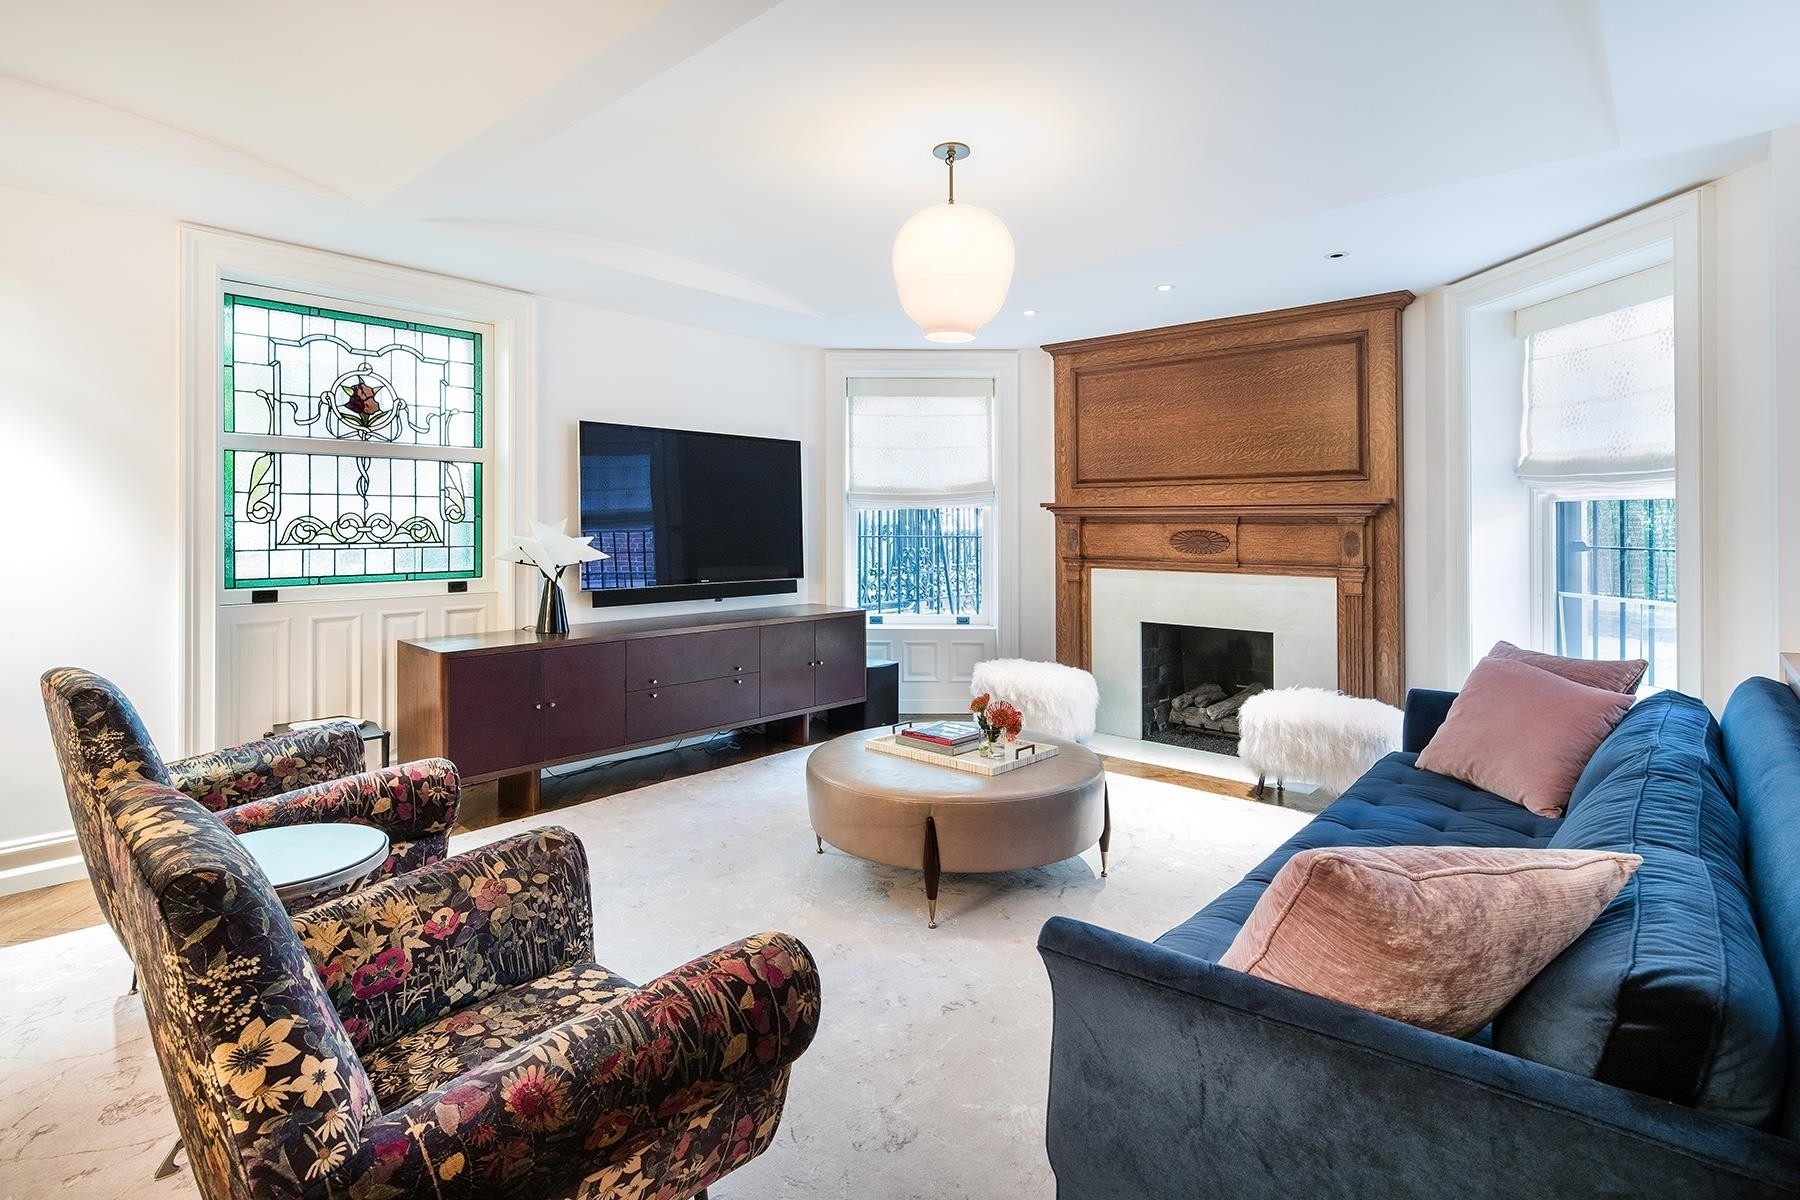 5. Single Family Townhouse for Sale at 17 PROSPECT PARK W, TOWNHOUSE Park Slope, Brooklyn, NY 11215